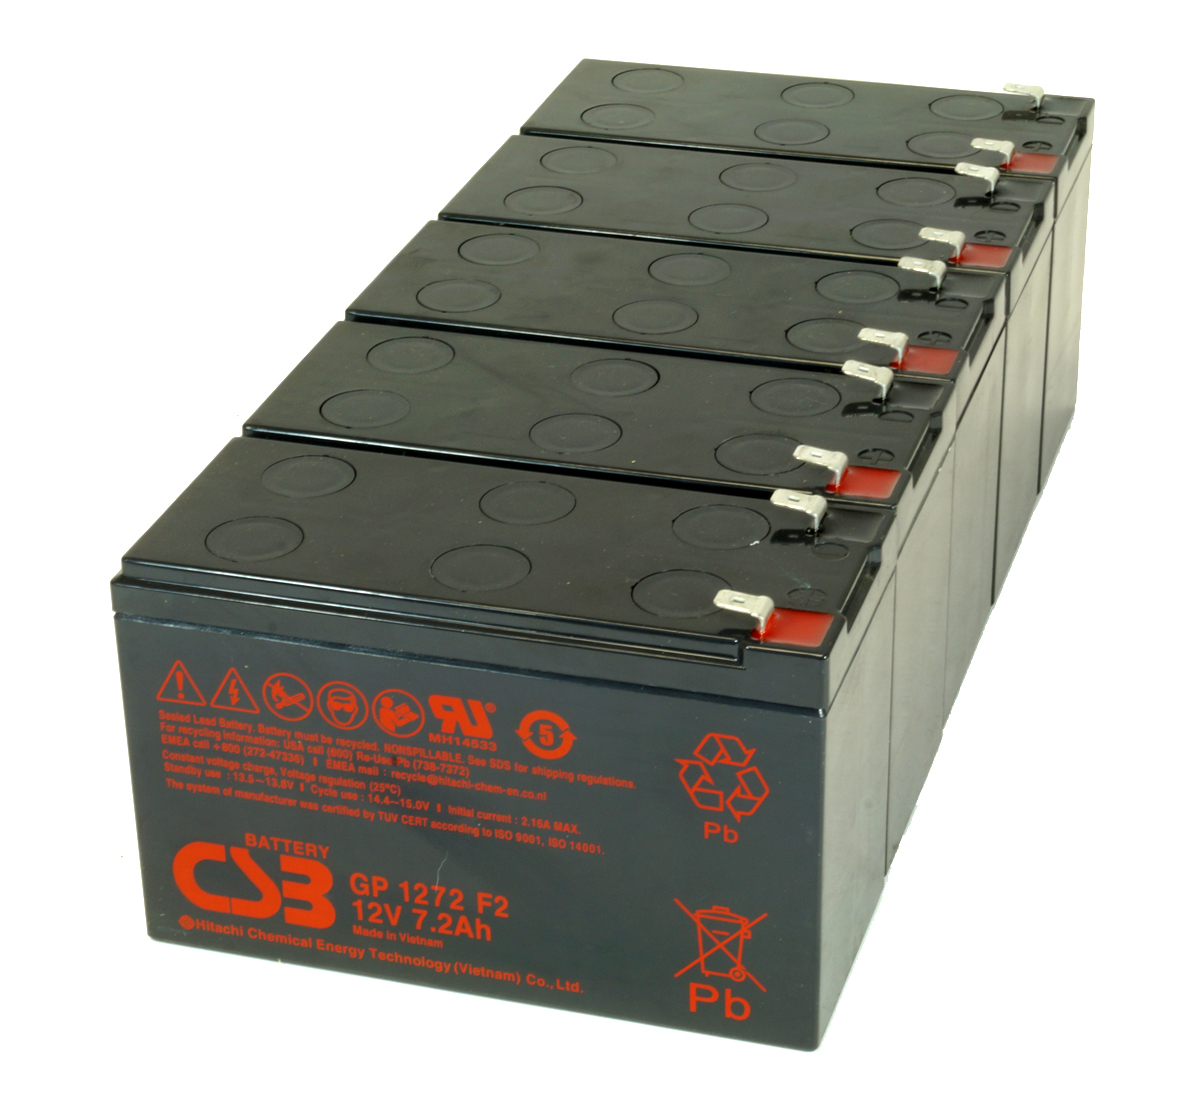 GP1272F2 Pack of 5 Batteries